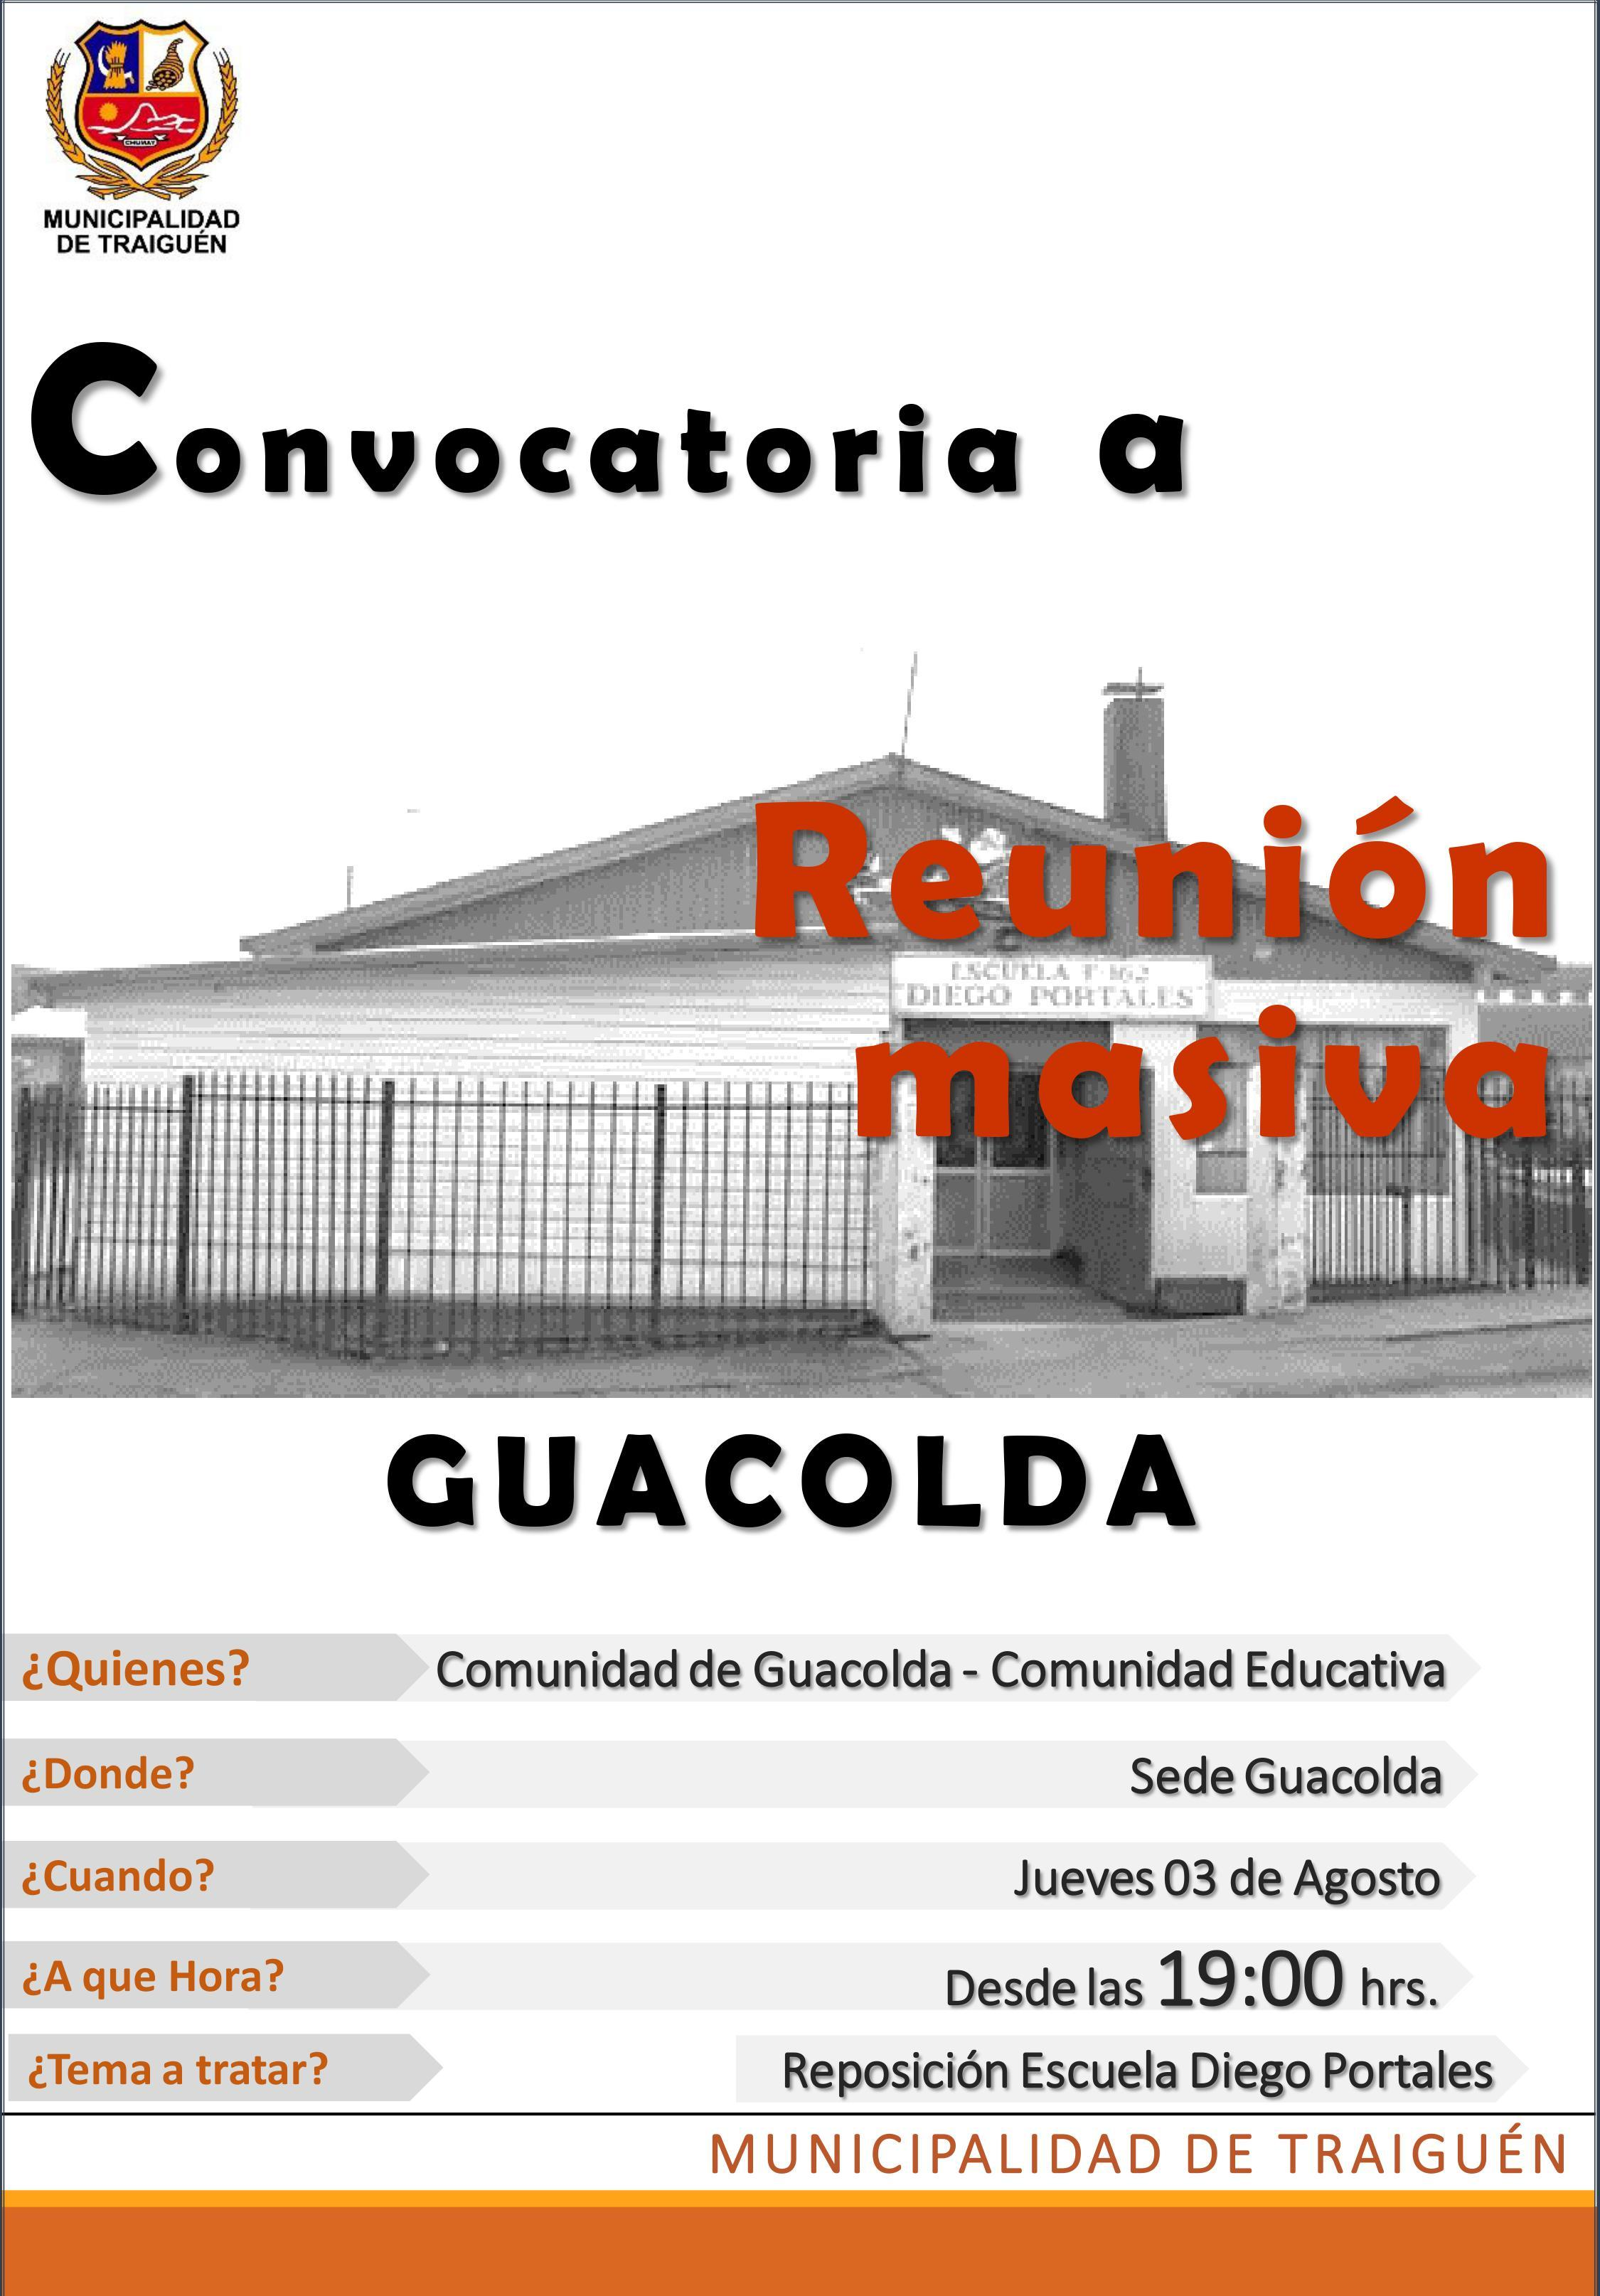 CONVOCATORIA REUNION GUACOLDA